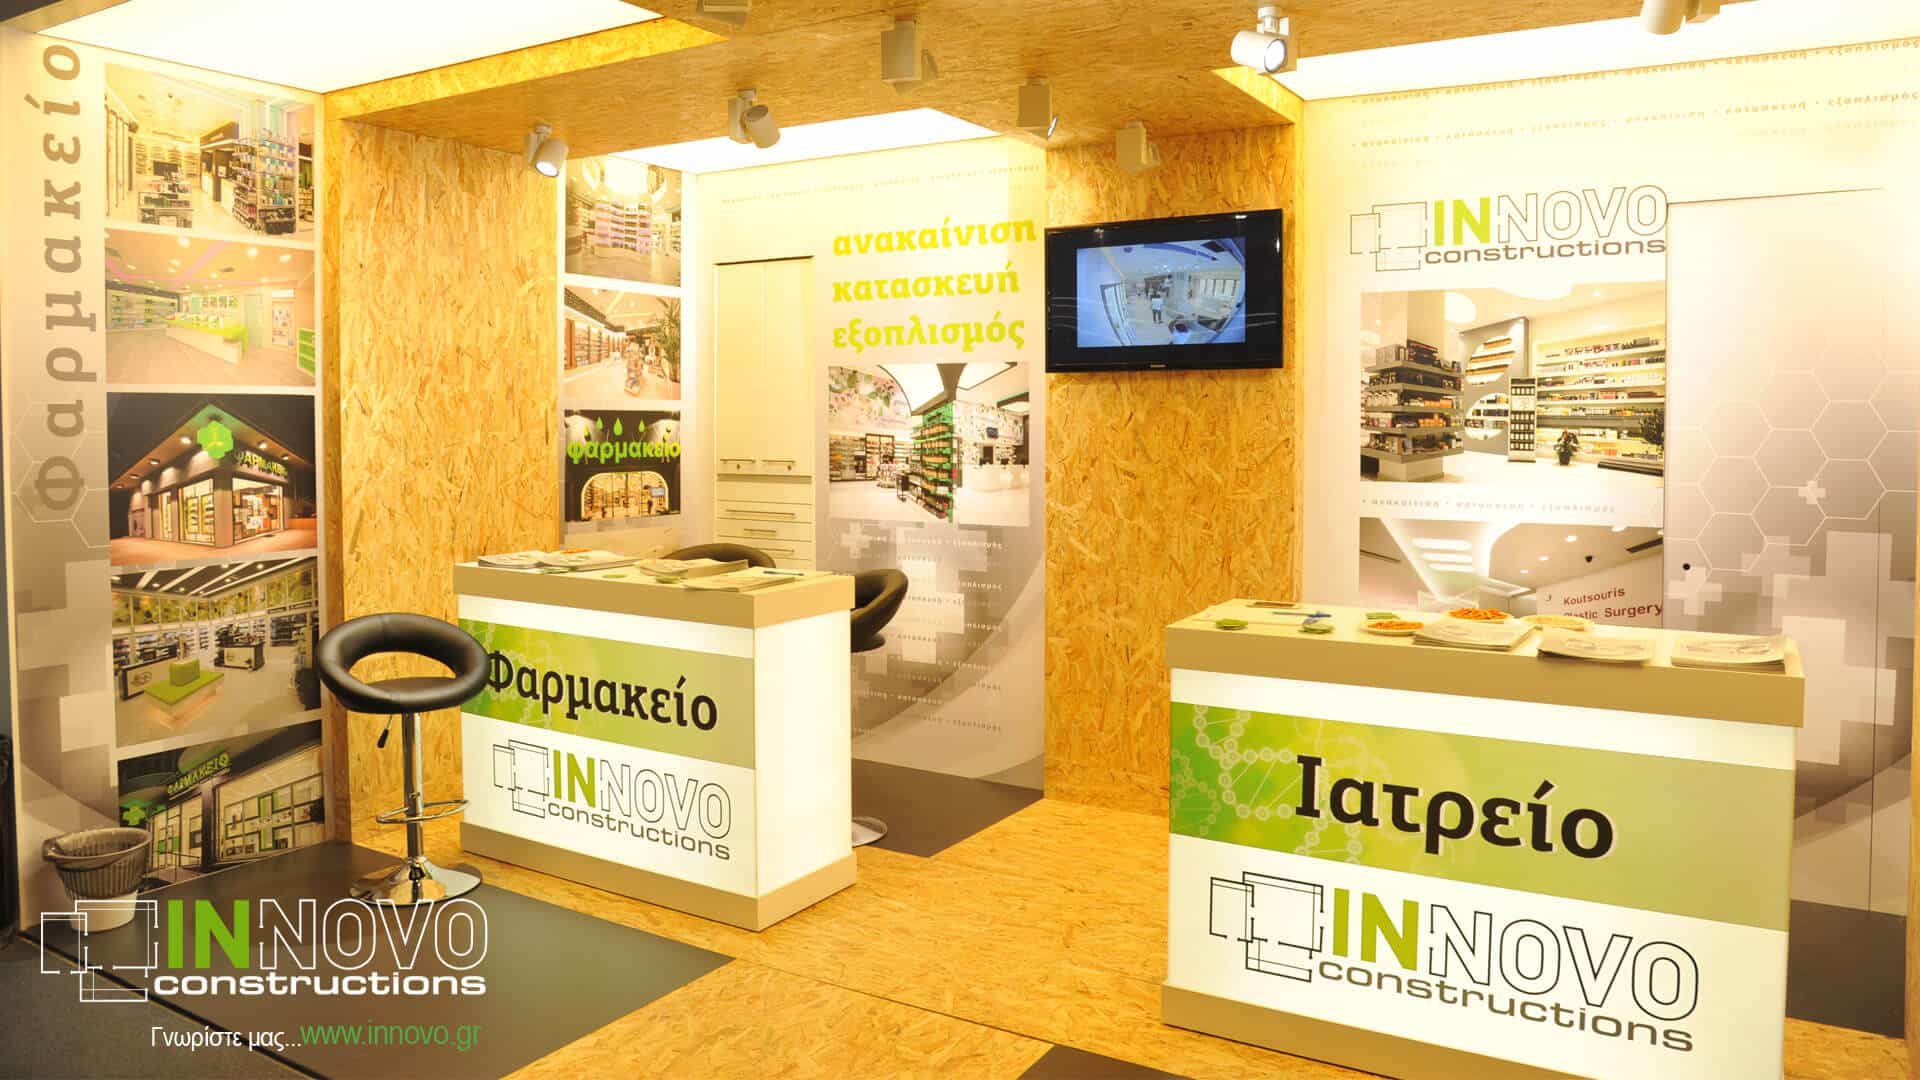 kataskevi-peripterou-exhibition-stand-construction-periptero-mas-6i-imerida-farmakopoion2015